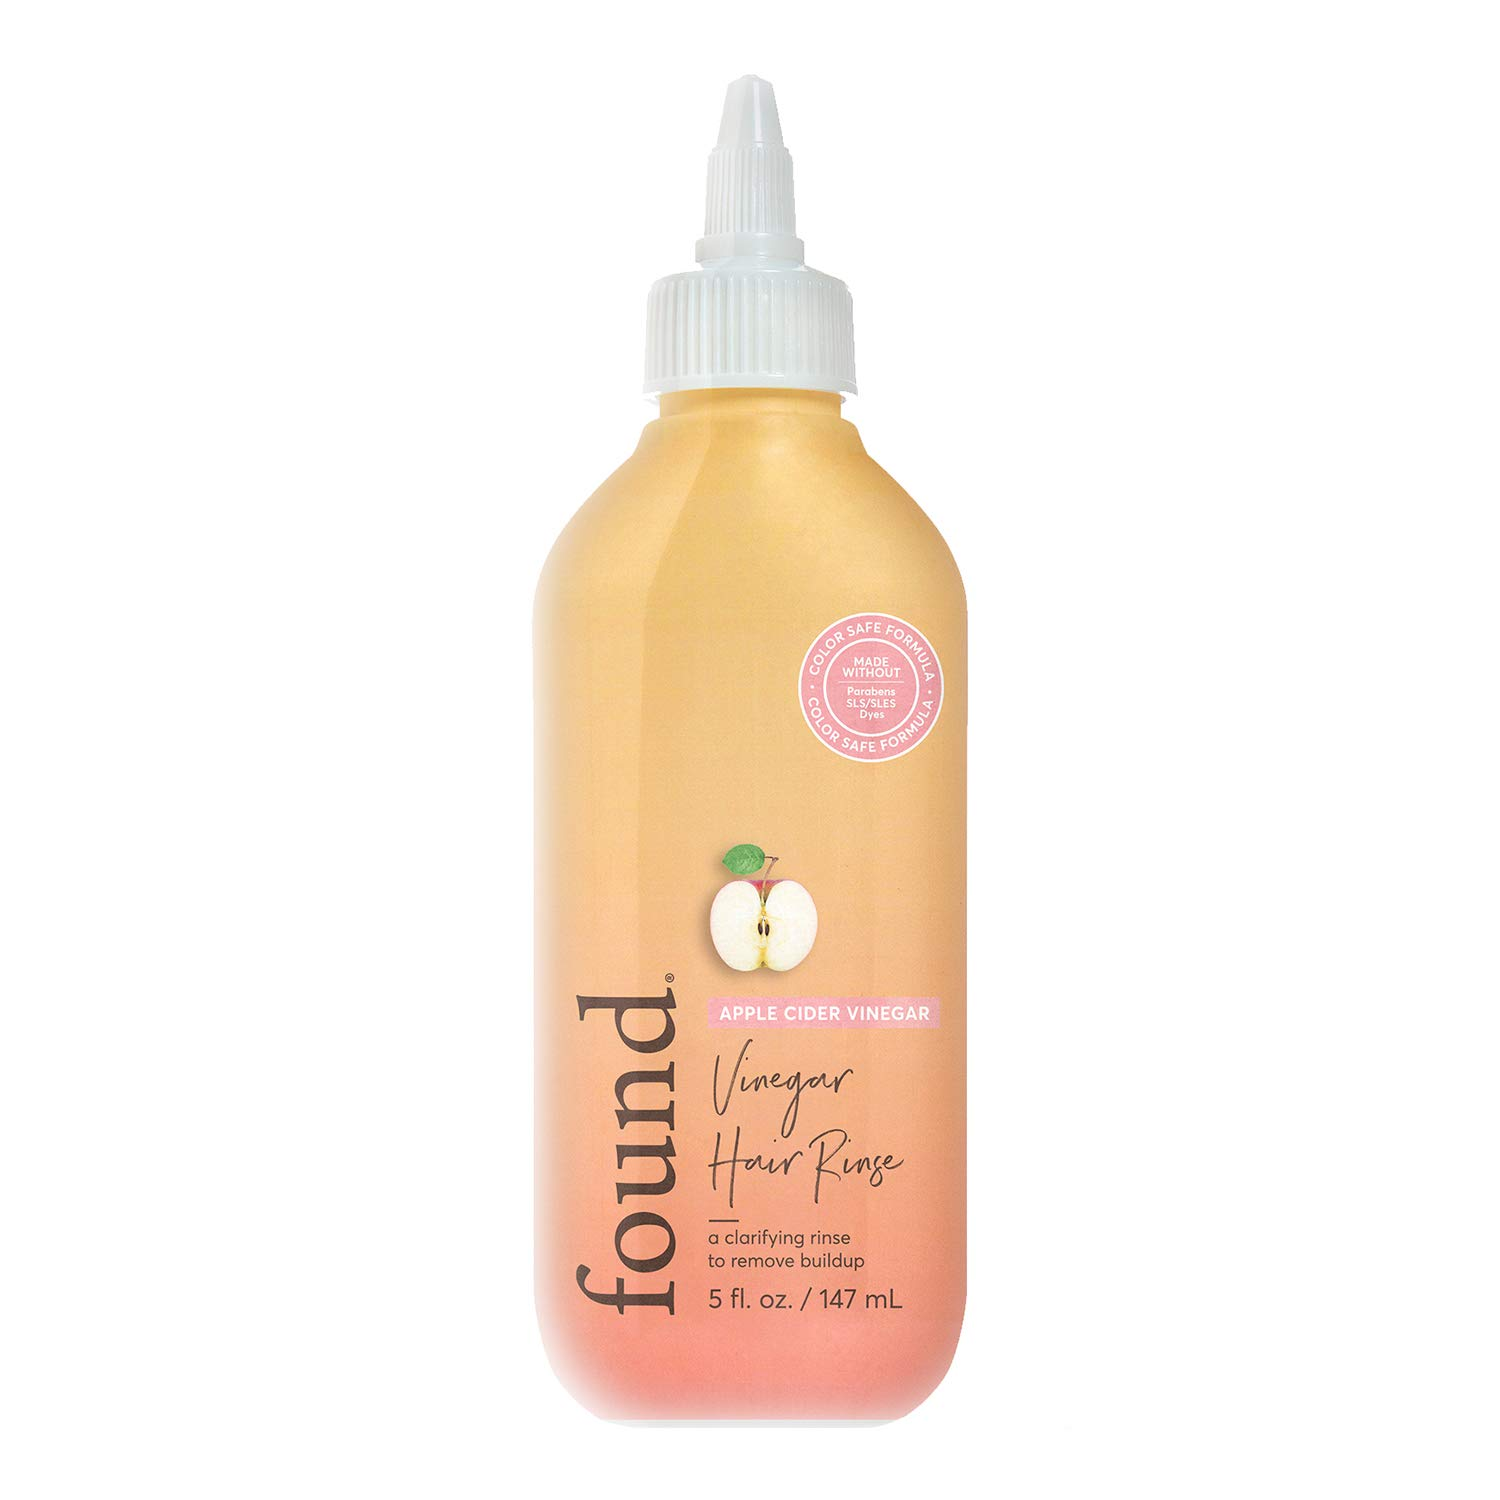 FOUND Haircare Apple Cider Vinegar Hair Rinse, 5 oz.| Removes Buildup & Promotes Shine